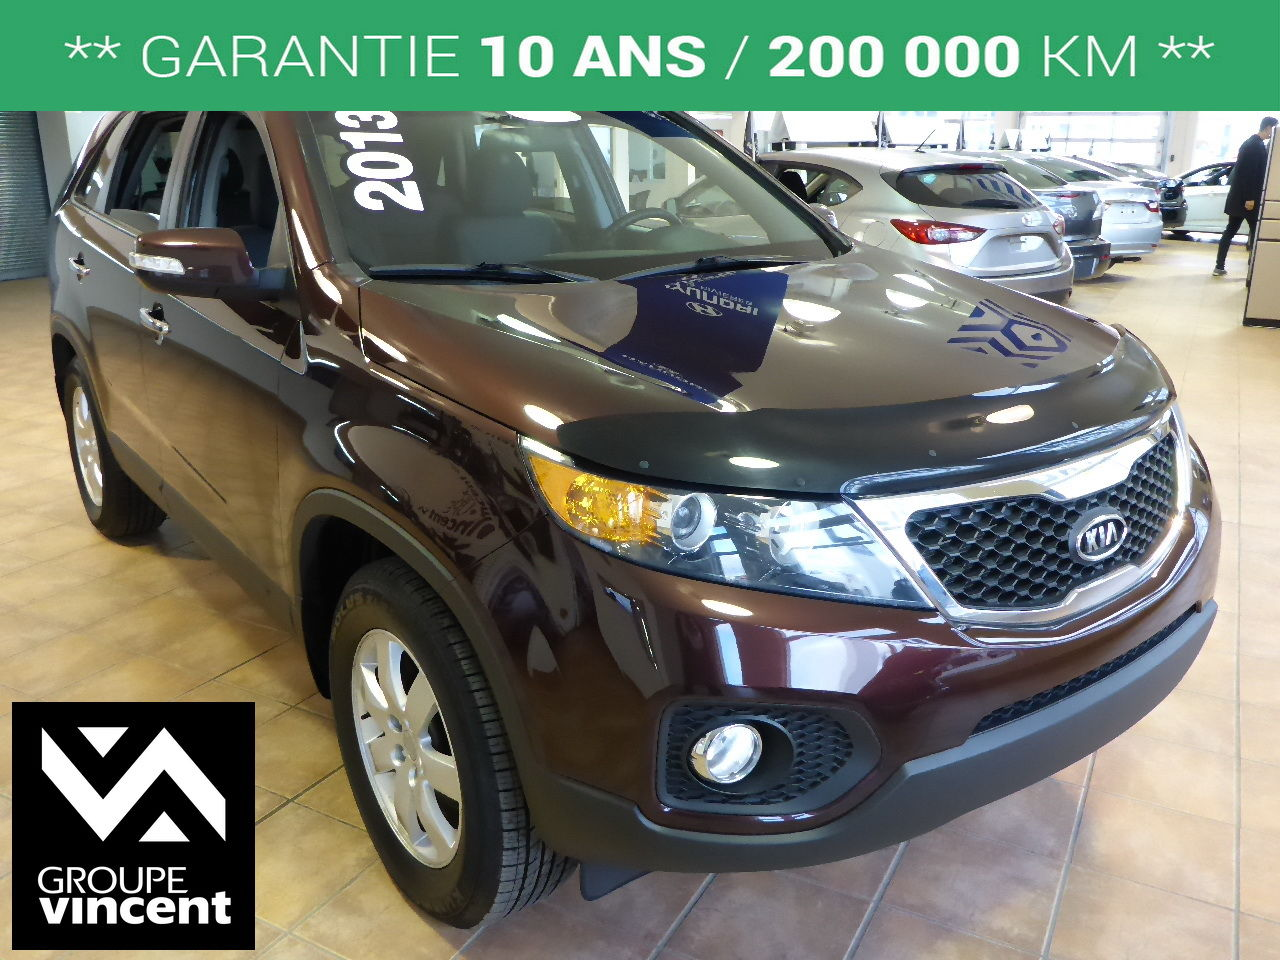 kia sorento lx jantes en alliage 2013 d 39 occasion shawinigan groupe vincent 3230a v. Black Bedroom Furniture Sets. Home Design Ideas